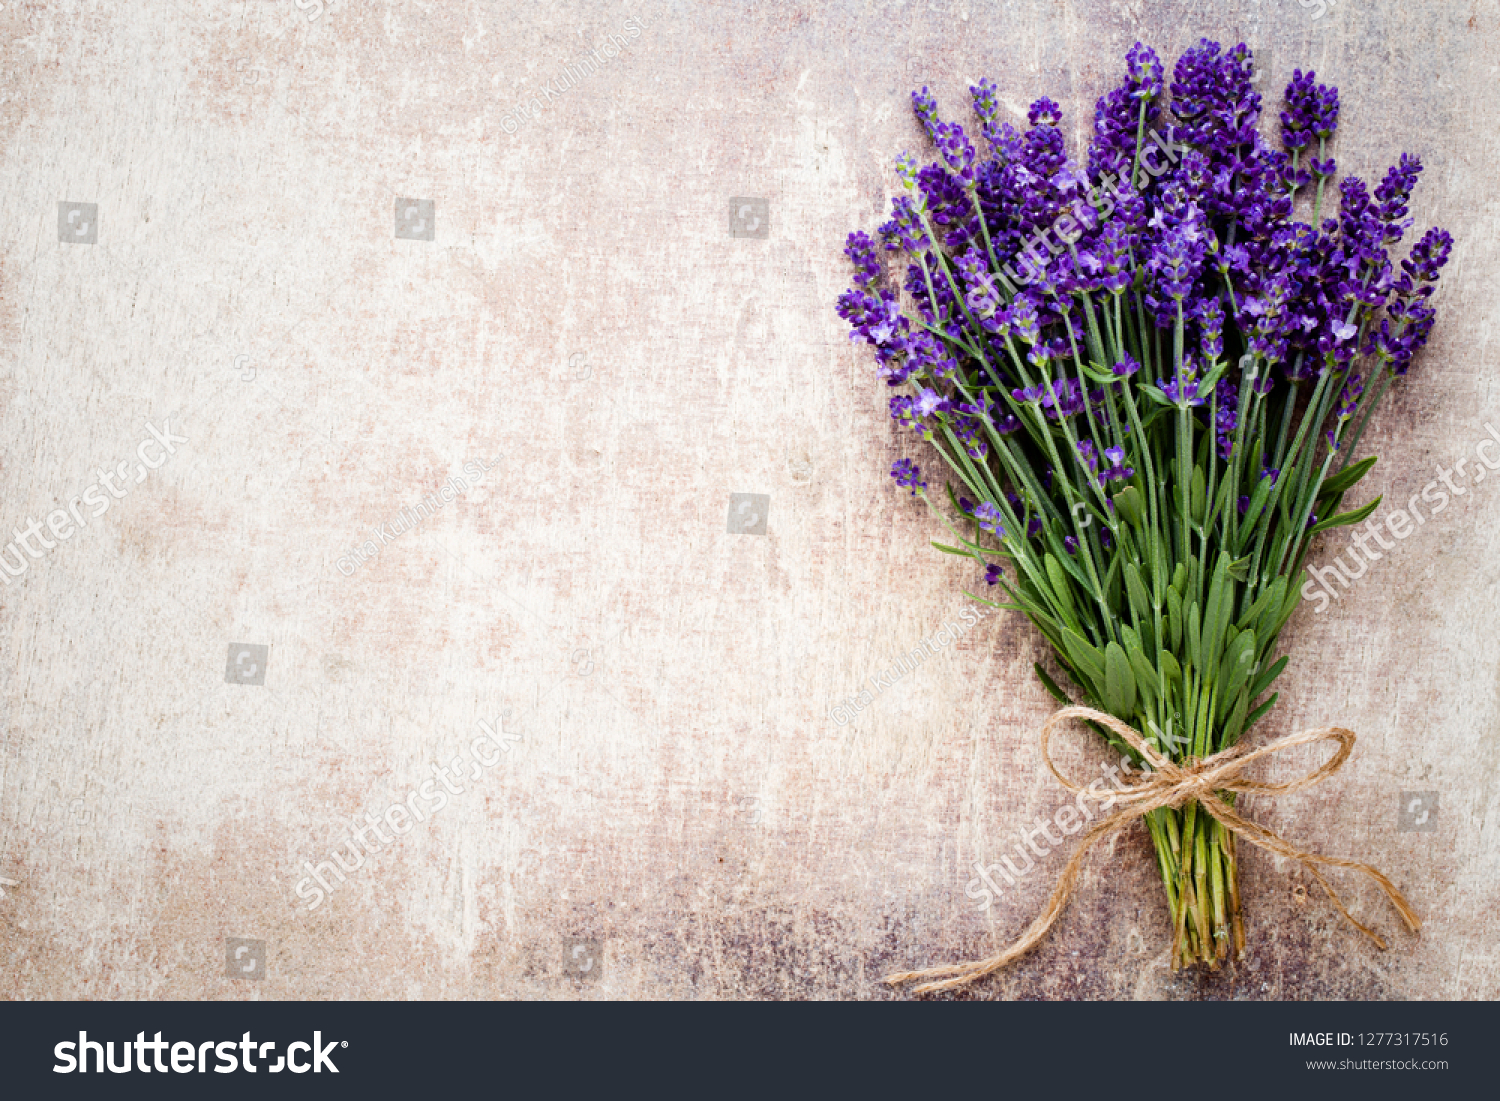 Lavender Flowers Bouquet On Rustic Background Stock Photo Edit Now 1277317516